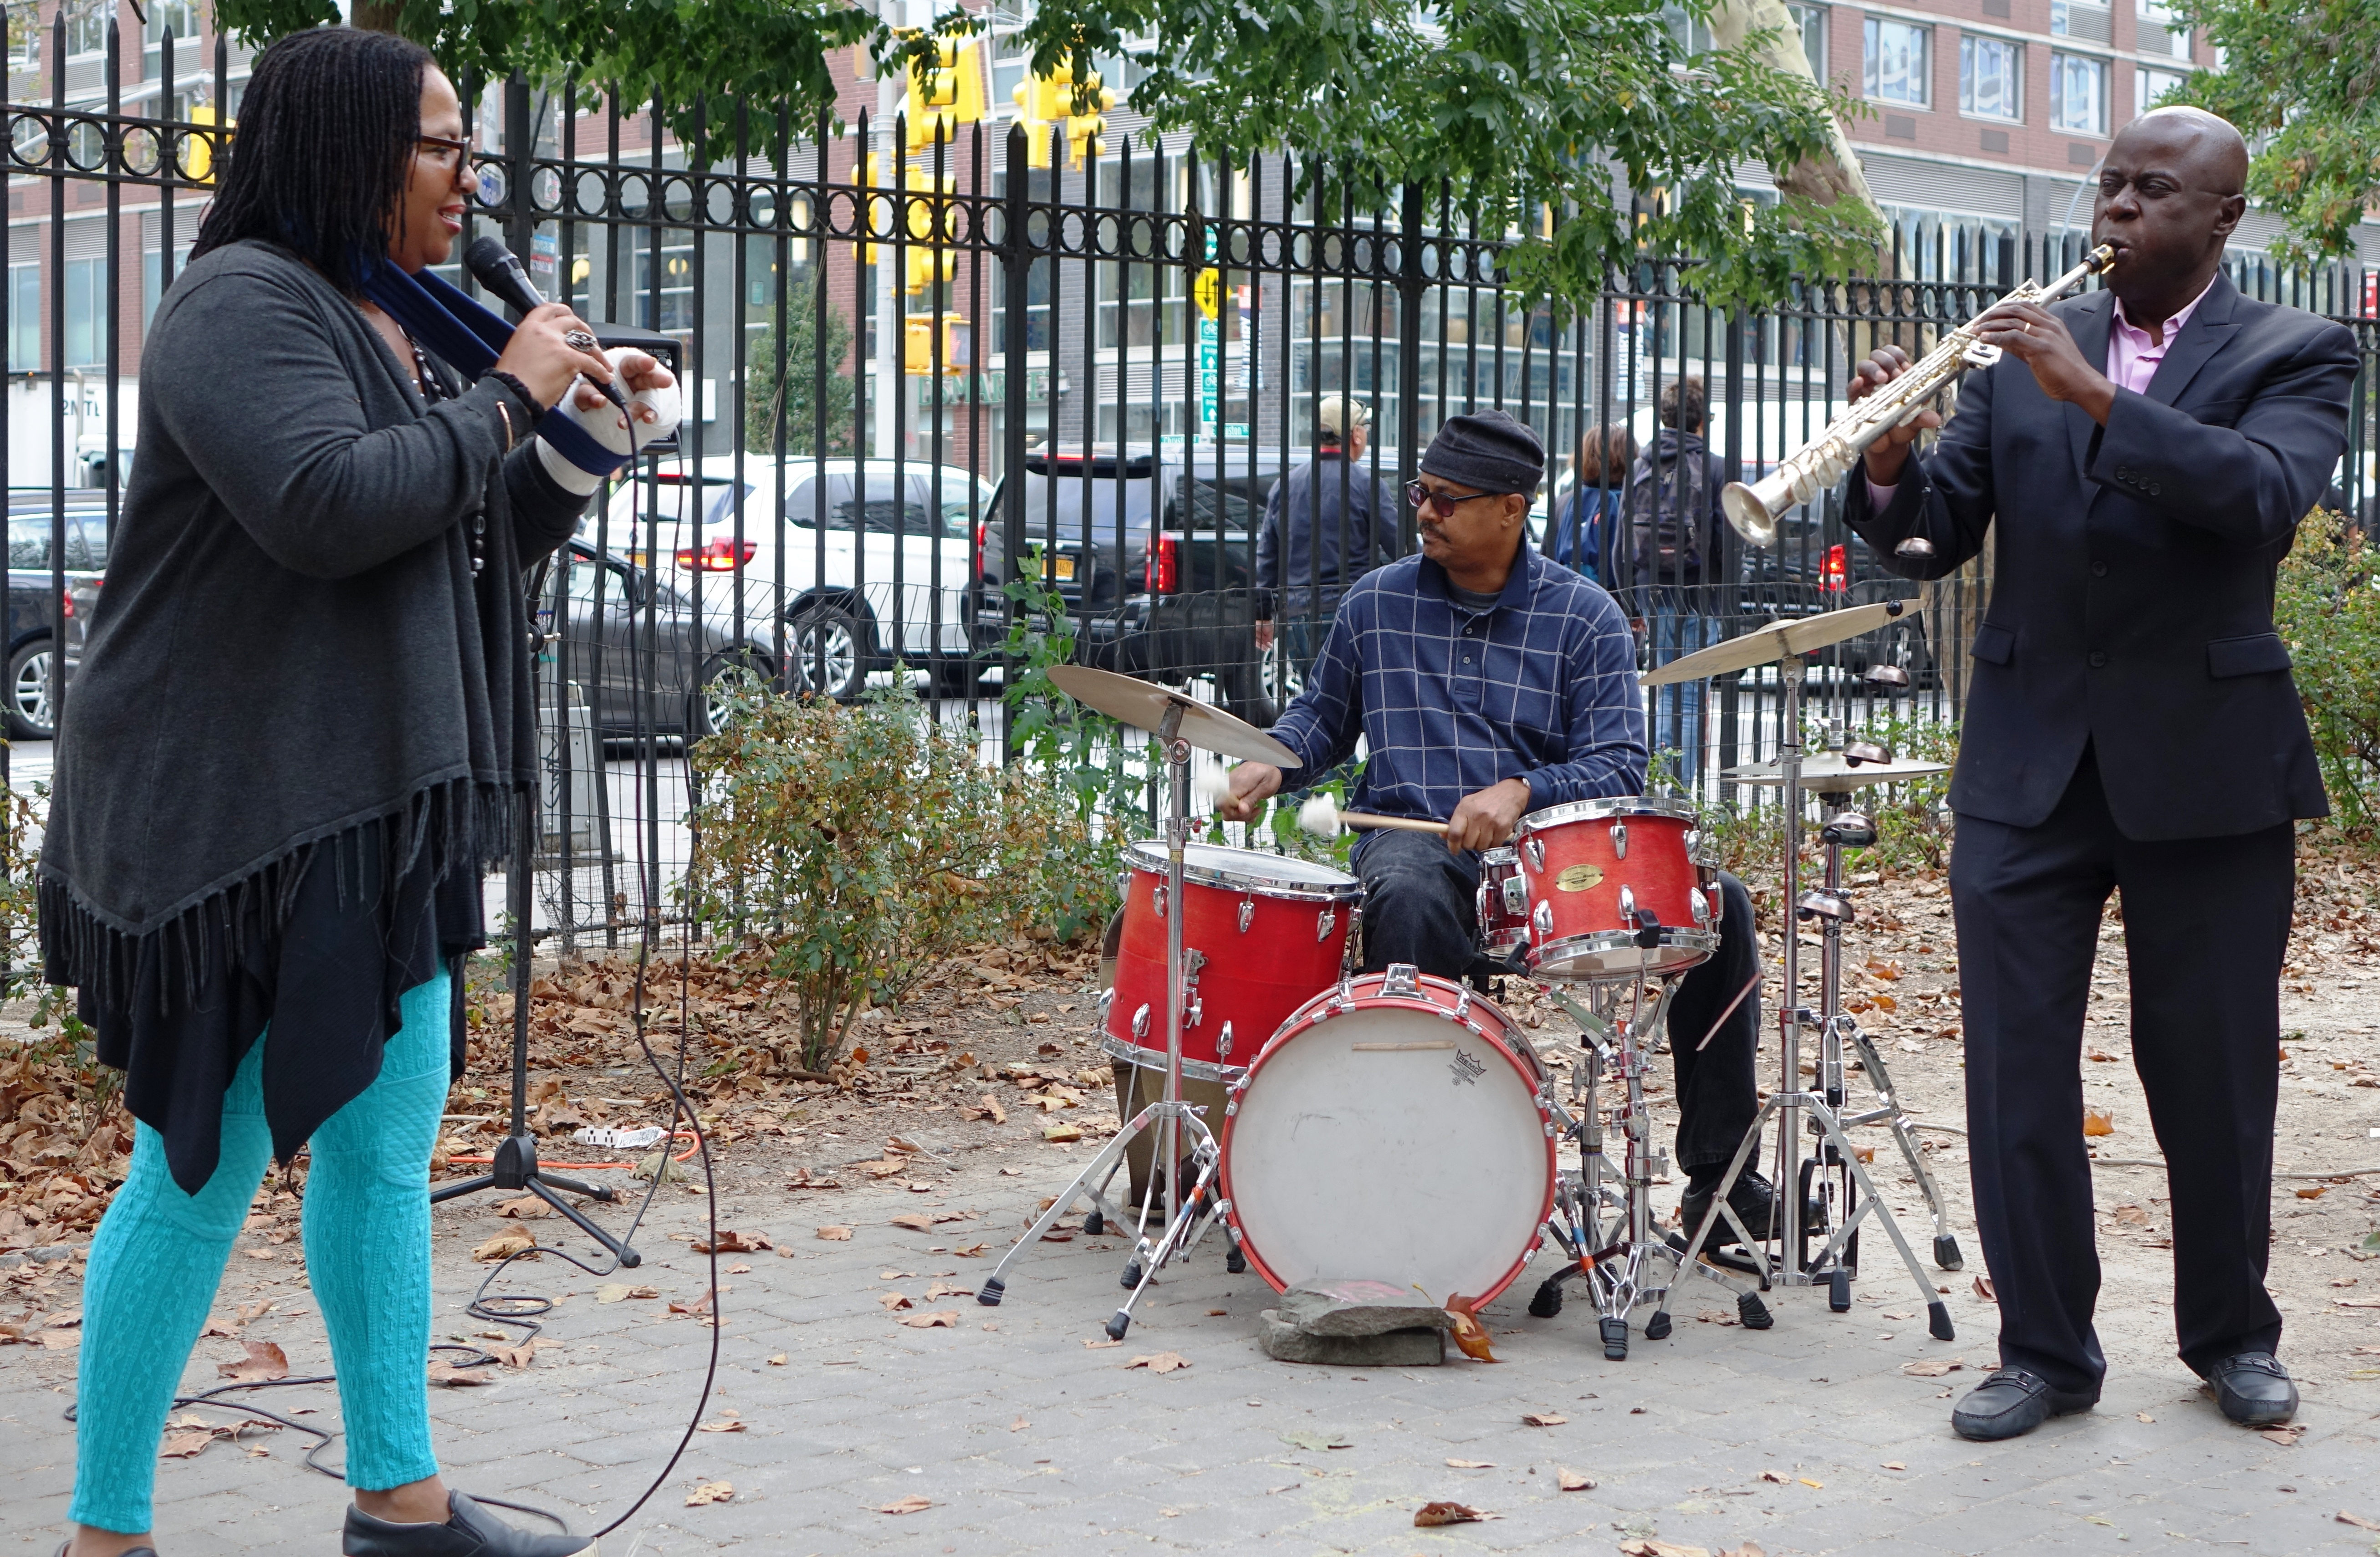 Fay Victor, Reggie Nicholson and Sam Newsome at First Street Green, NYC in September 2017